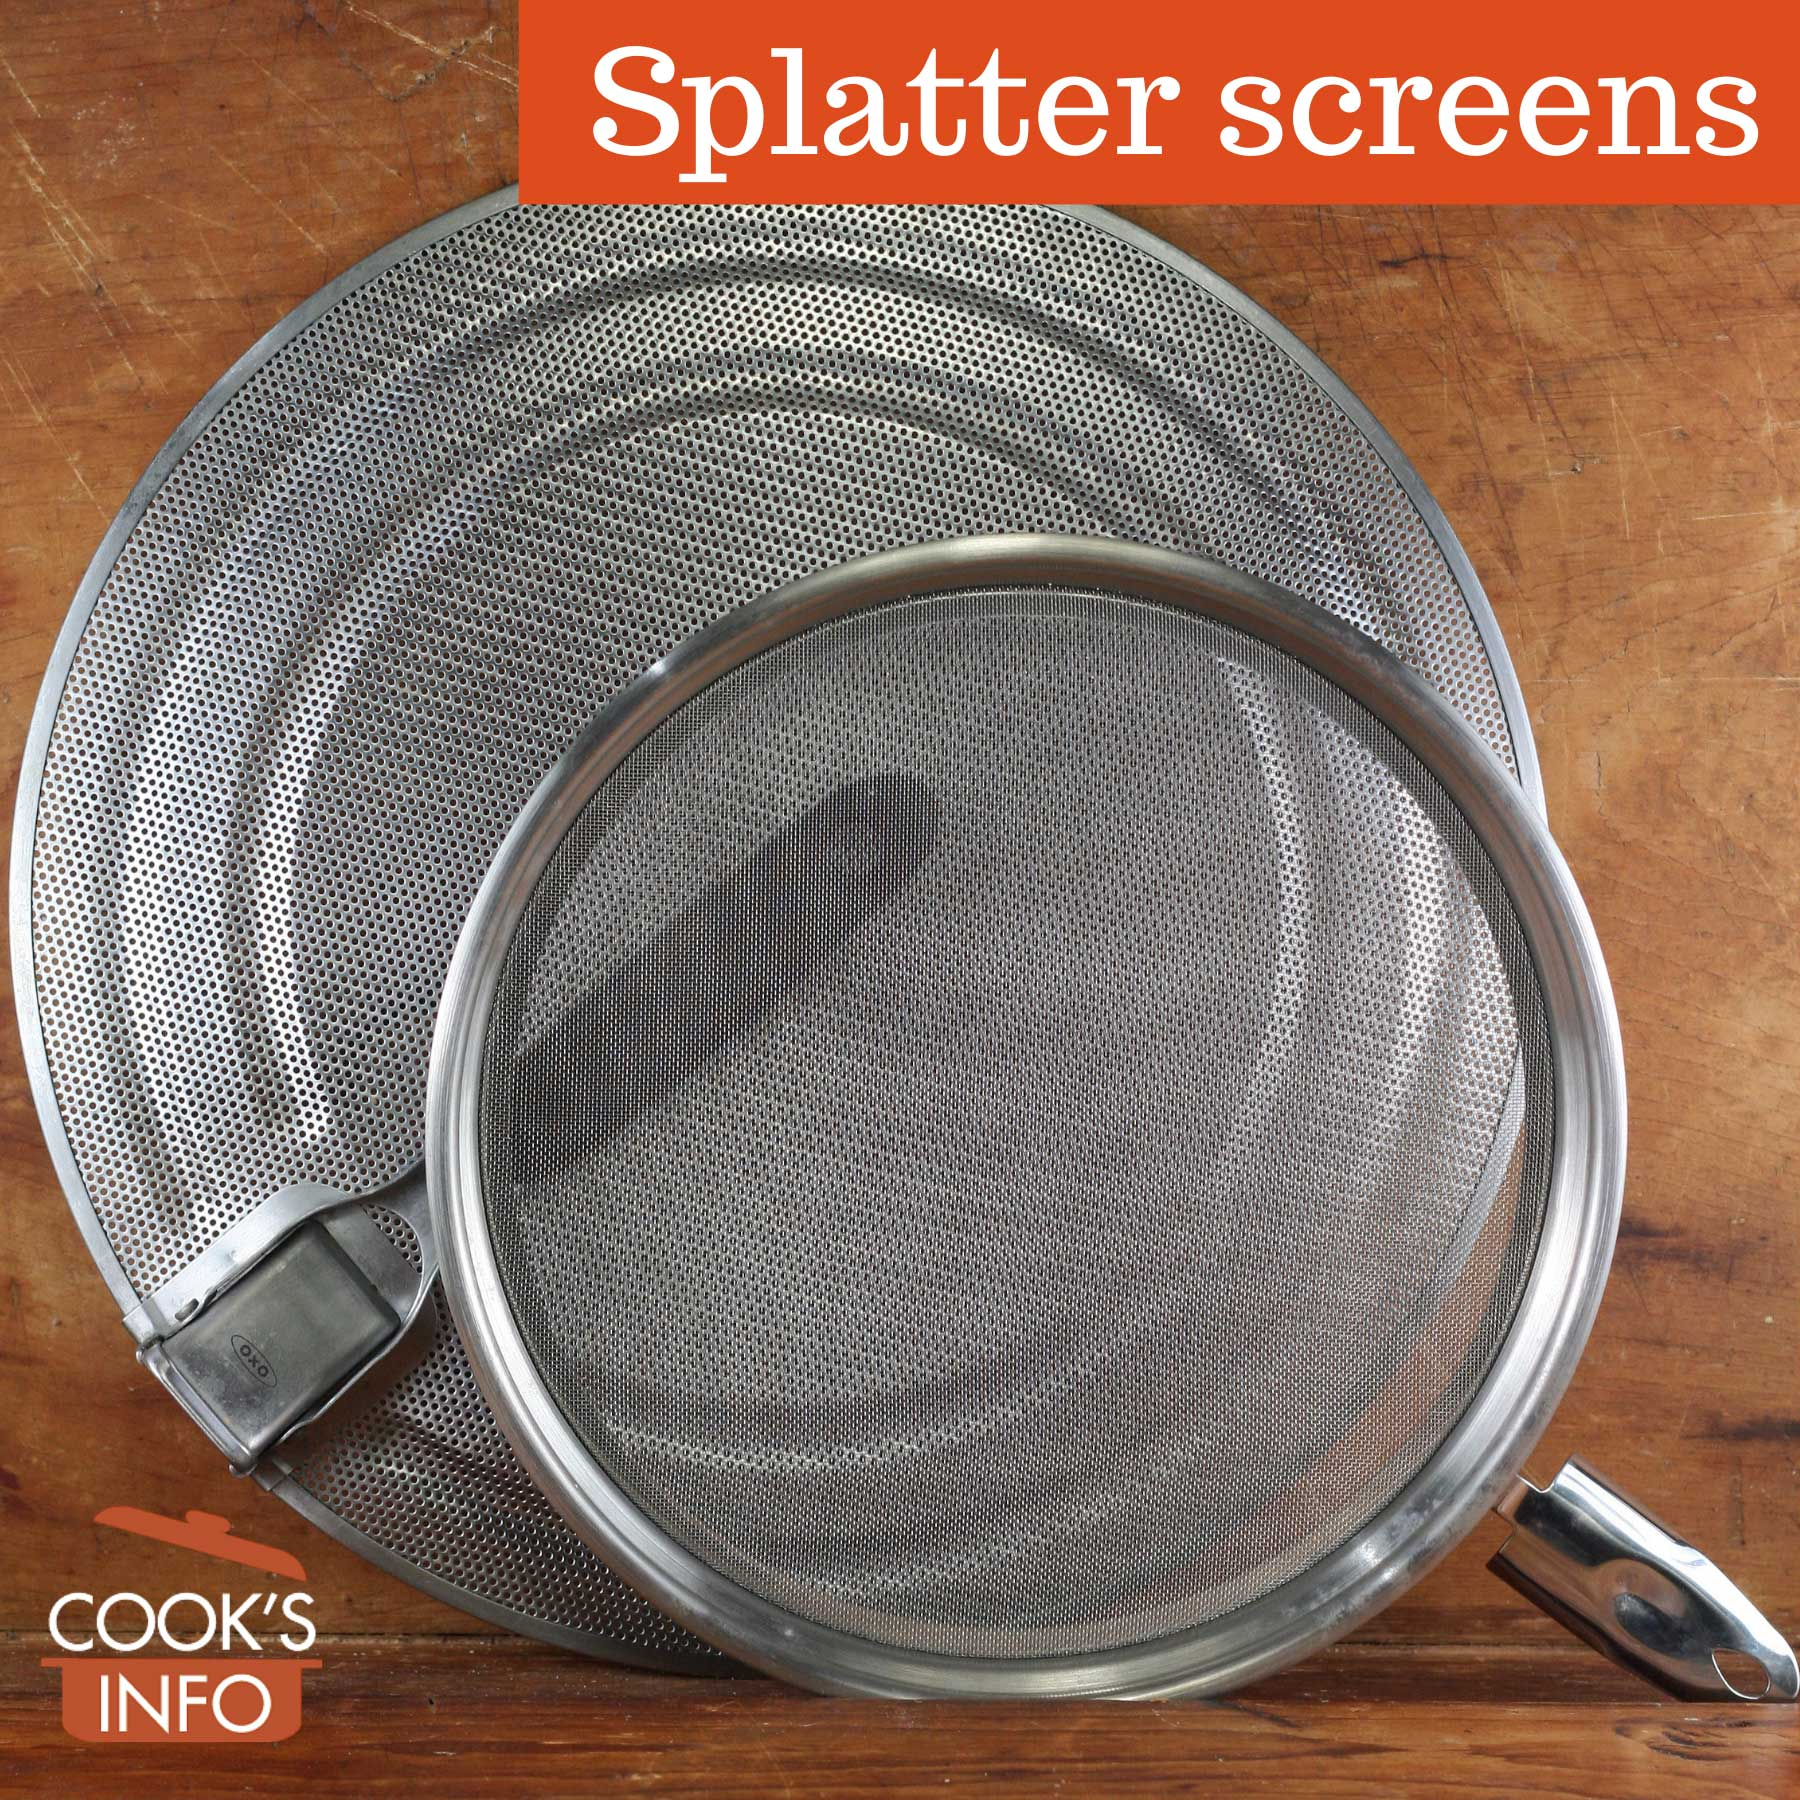 Splatter screens